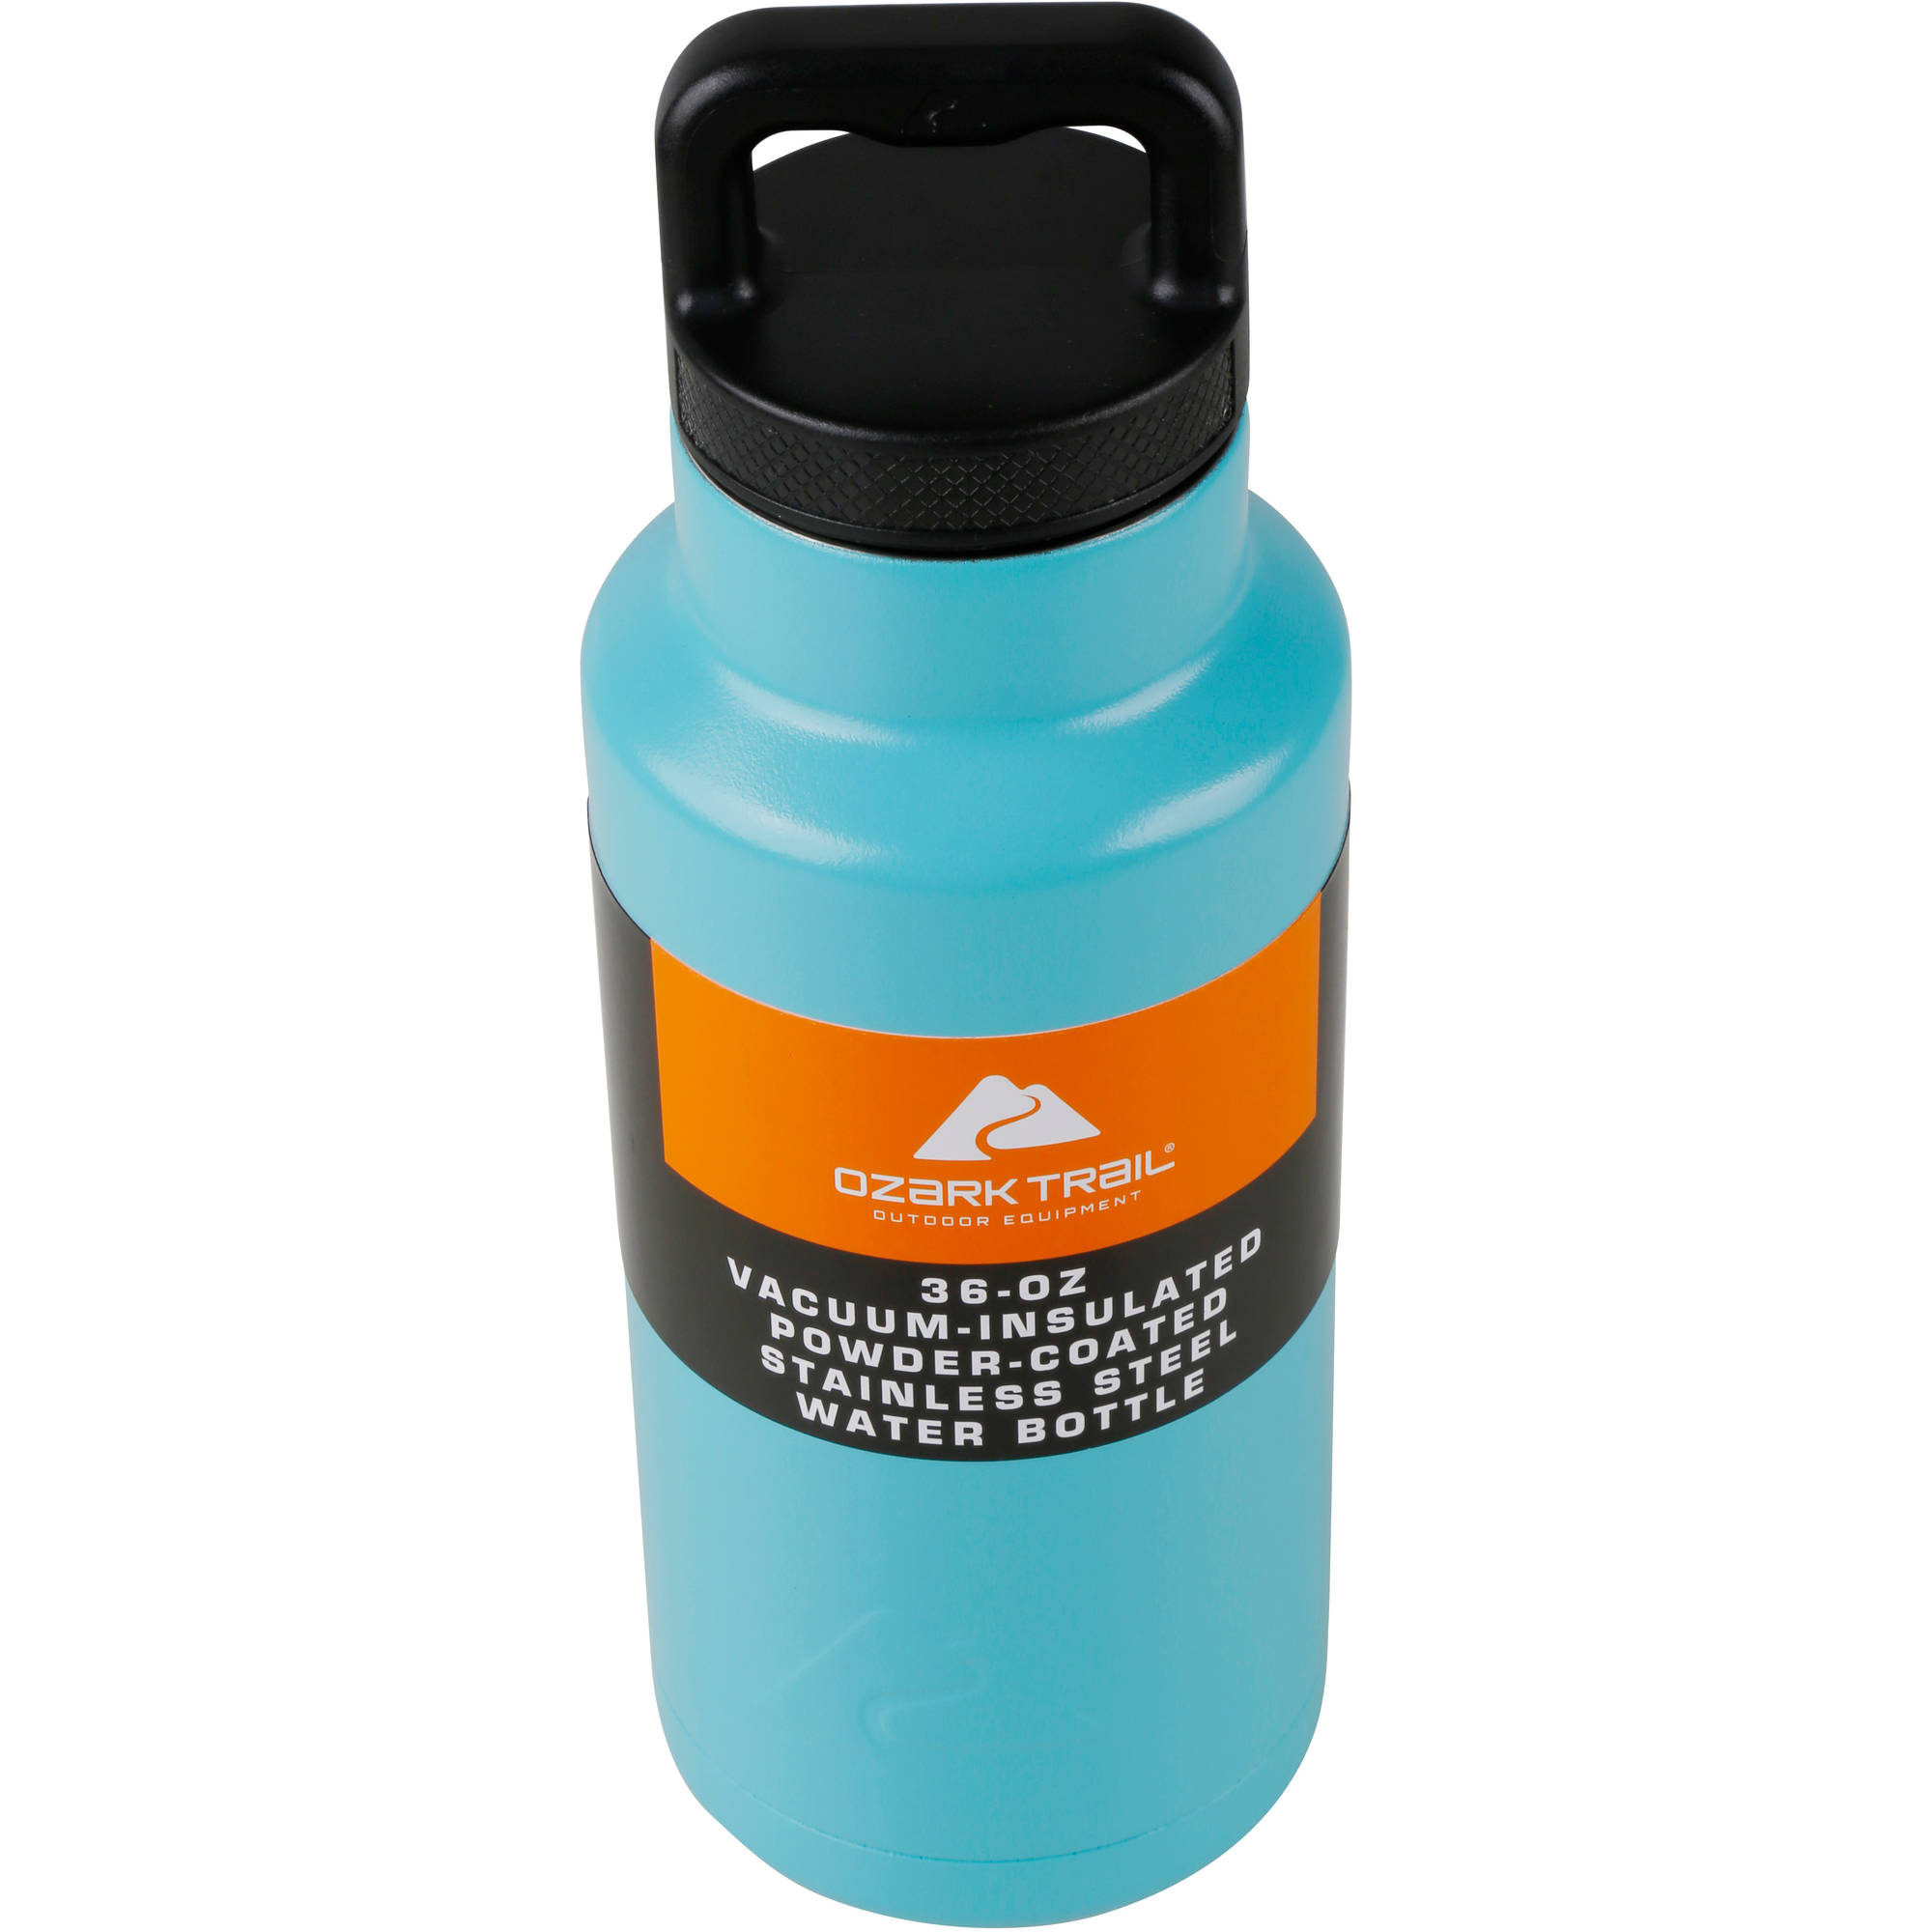 36OZ. POWDER COATED STAINLESS STEEL WATER BOTTLE-TURQUOISE